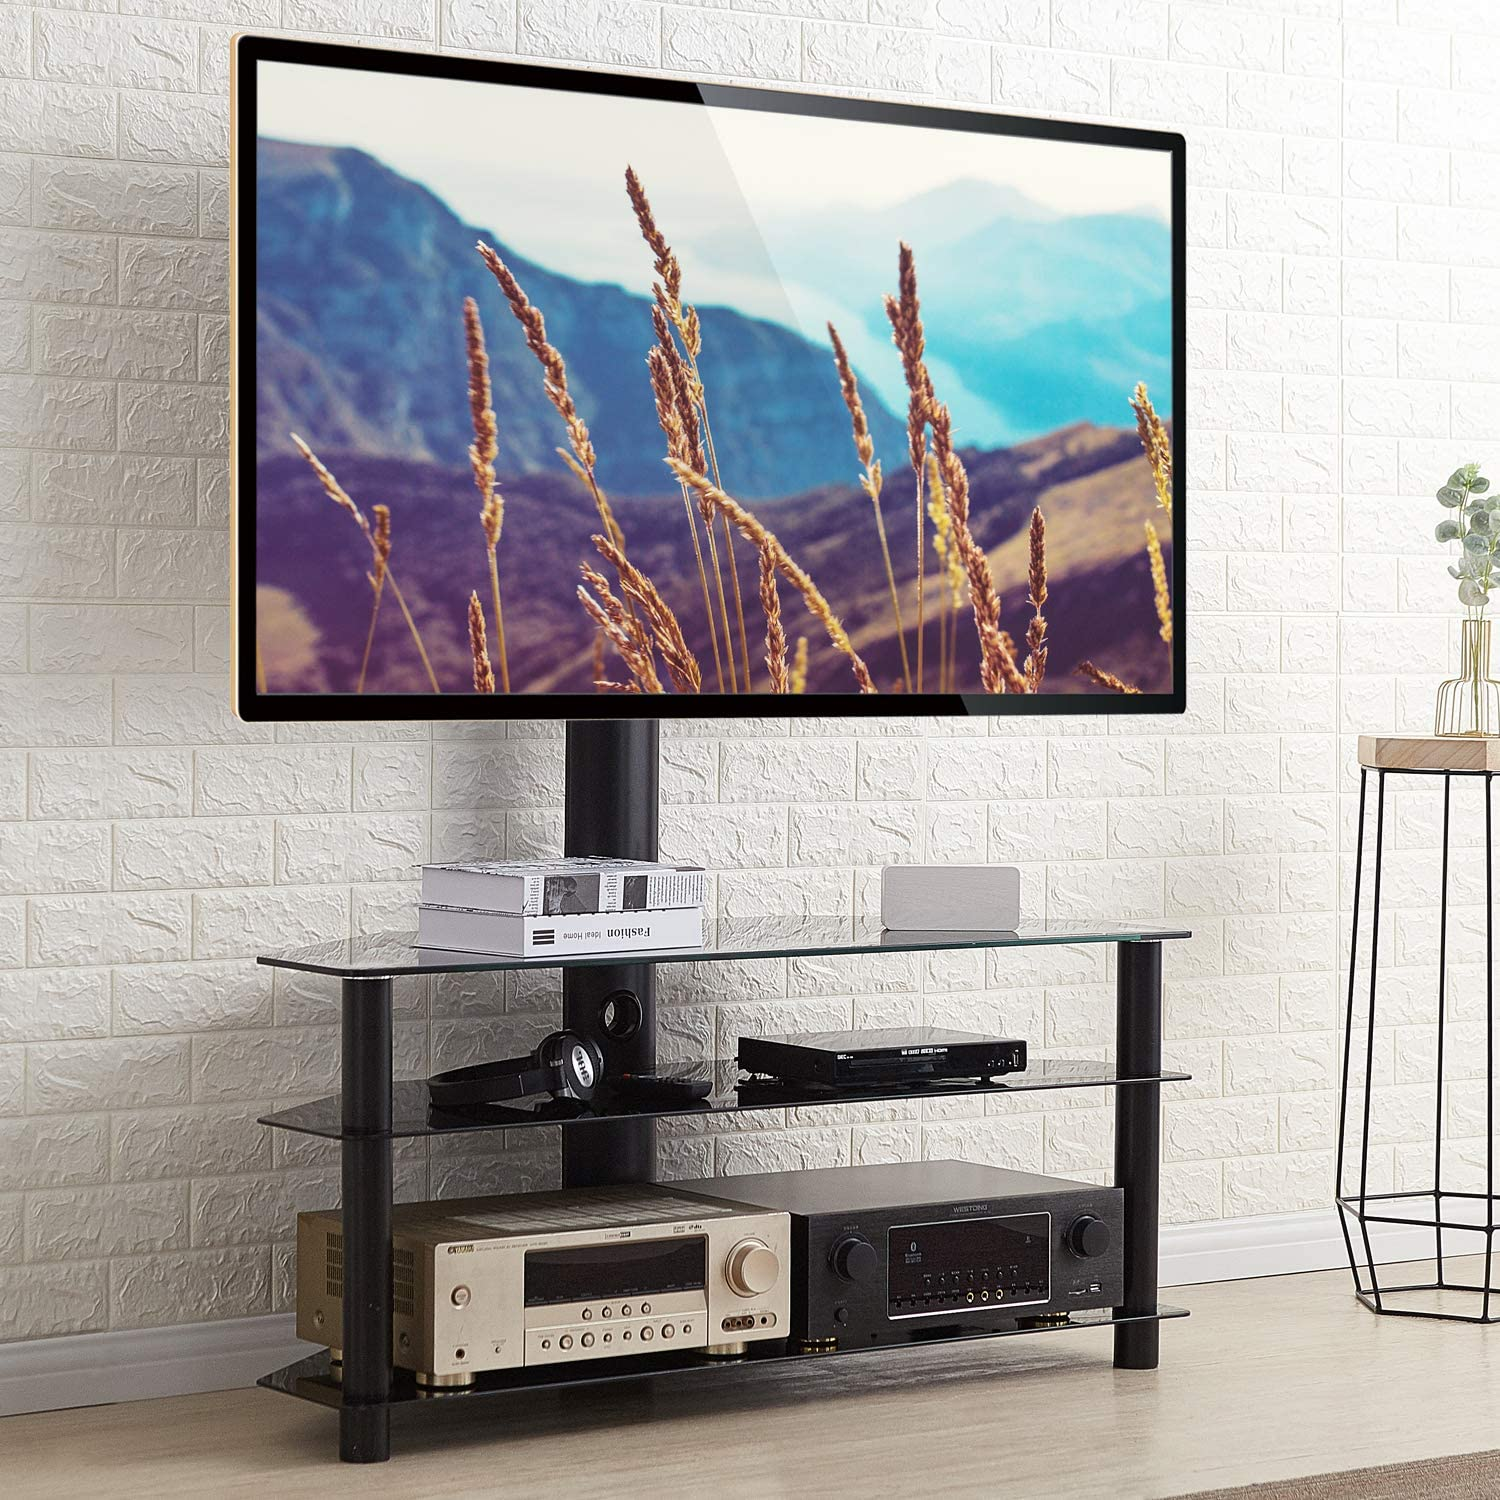 Rfiver Corner Tv Stand For Most 32 40 42 43 46 49 50 55 Amazon Co Uk Electronics